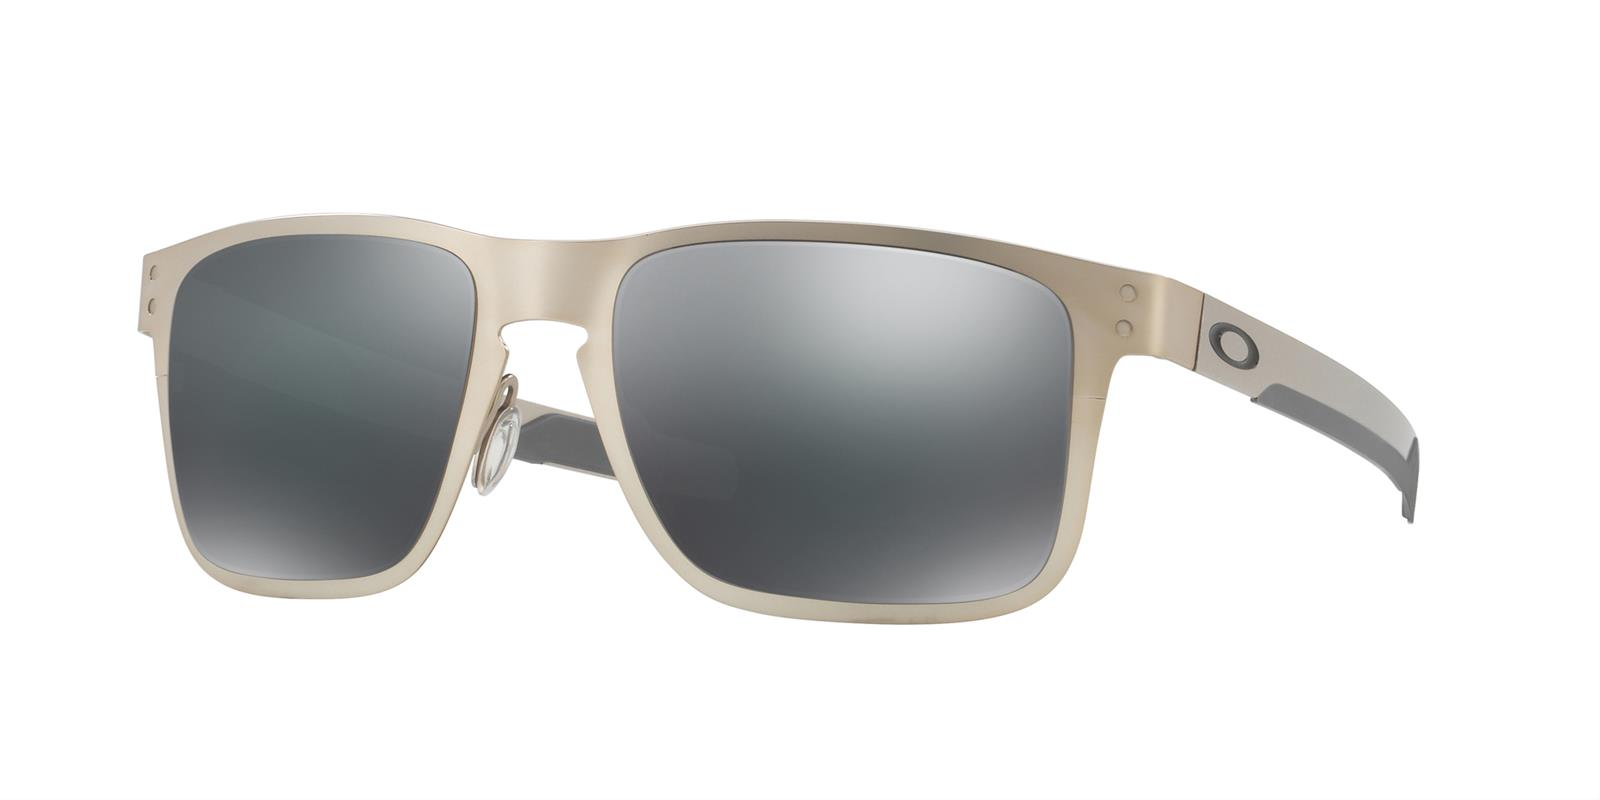 6ff479b23c4 Oakley Holbrook Metal Sunglasses OO4123-0355 - Free Shipping on Orders Over   99 at Summit Racing